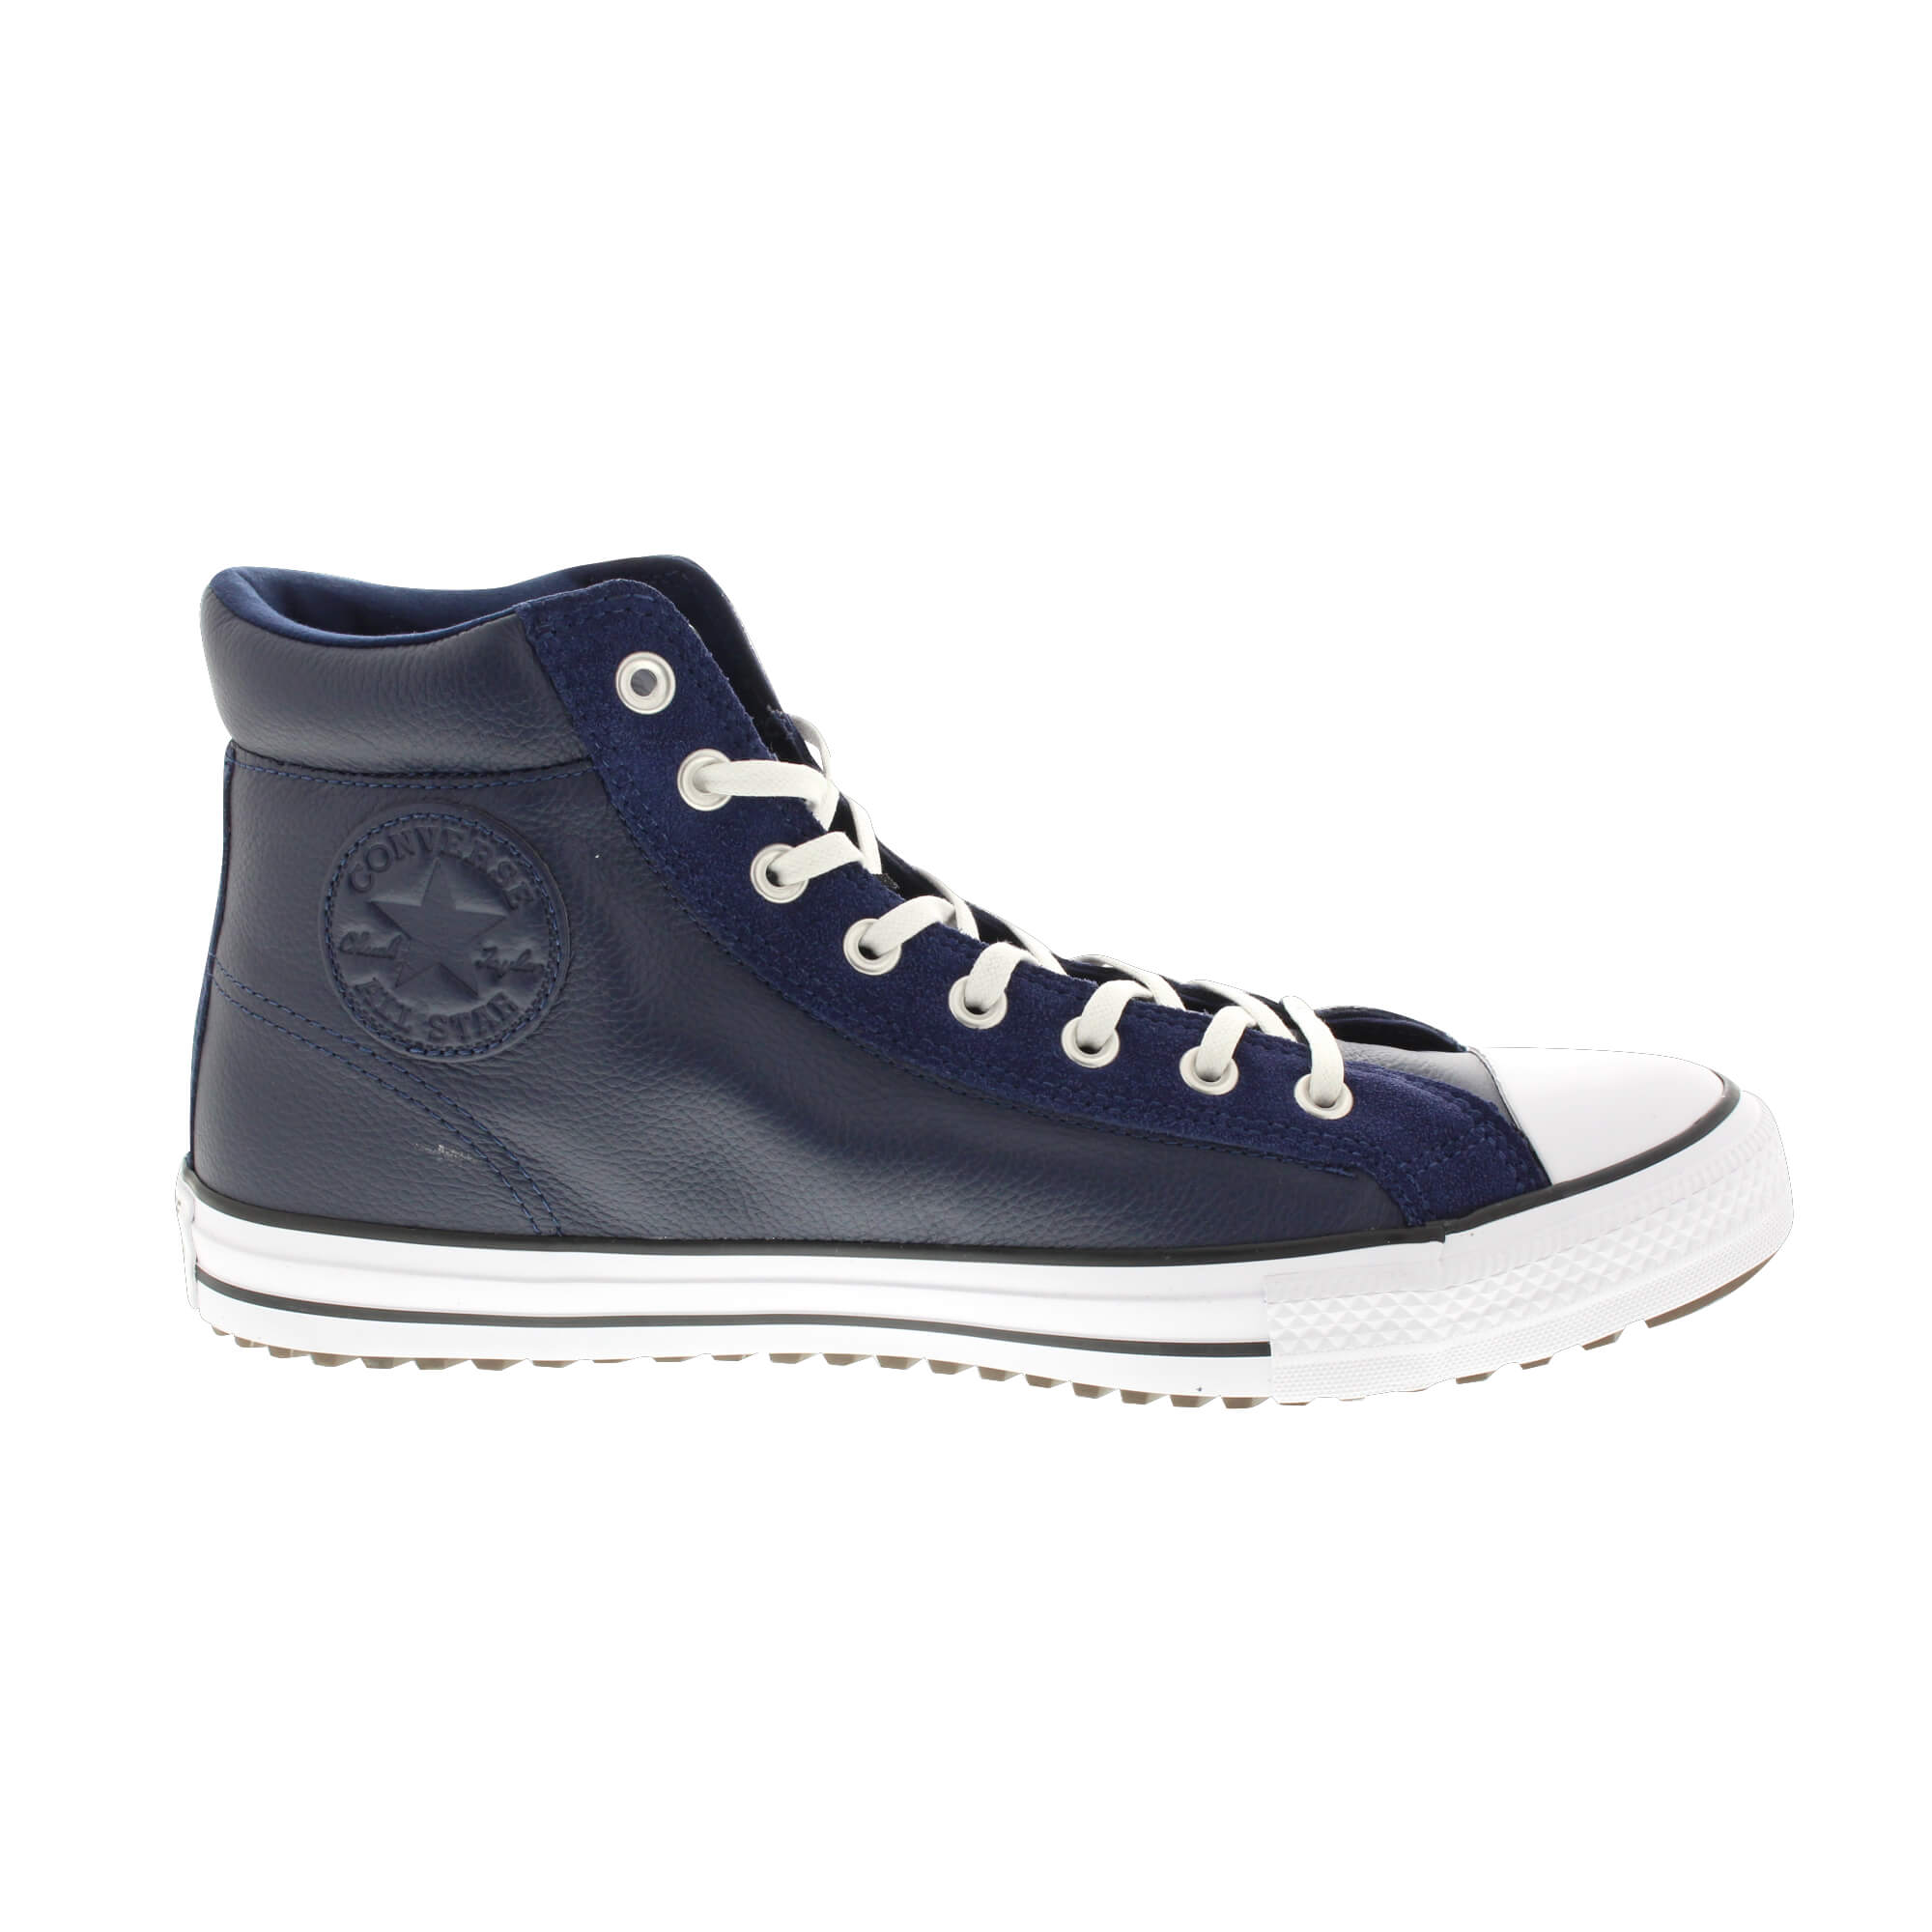 Converse Chuck Taylor All Star Boot PC Mid, vel. 45